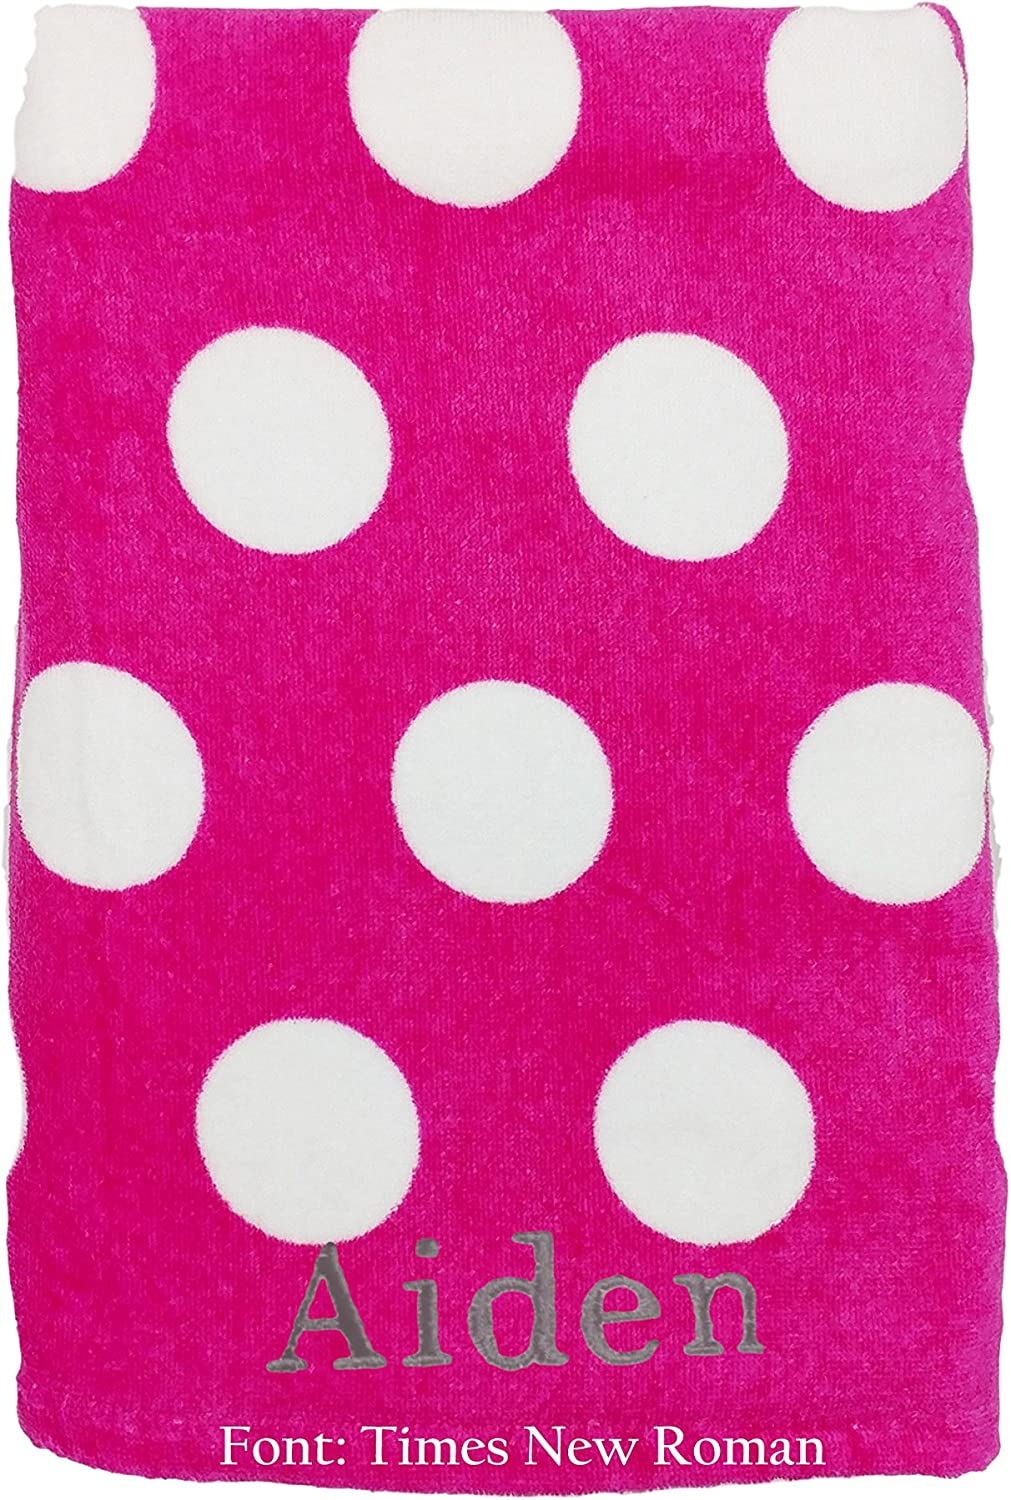 BY LORA Personalized 100% Ring Spun Terry Beach Towels, 30 x 60 inhes - 360 GSM Thick - Fuchsia